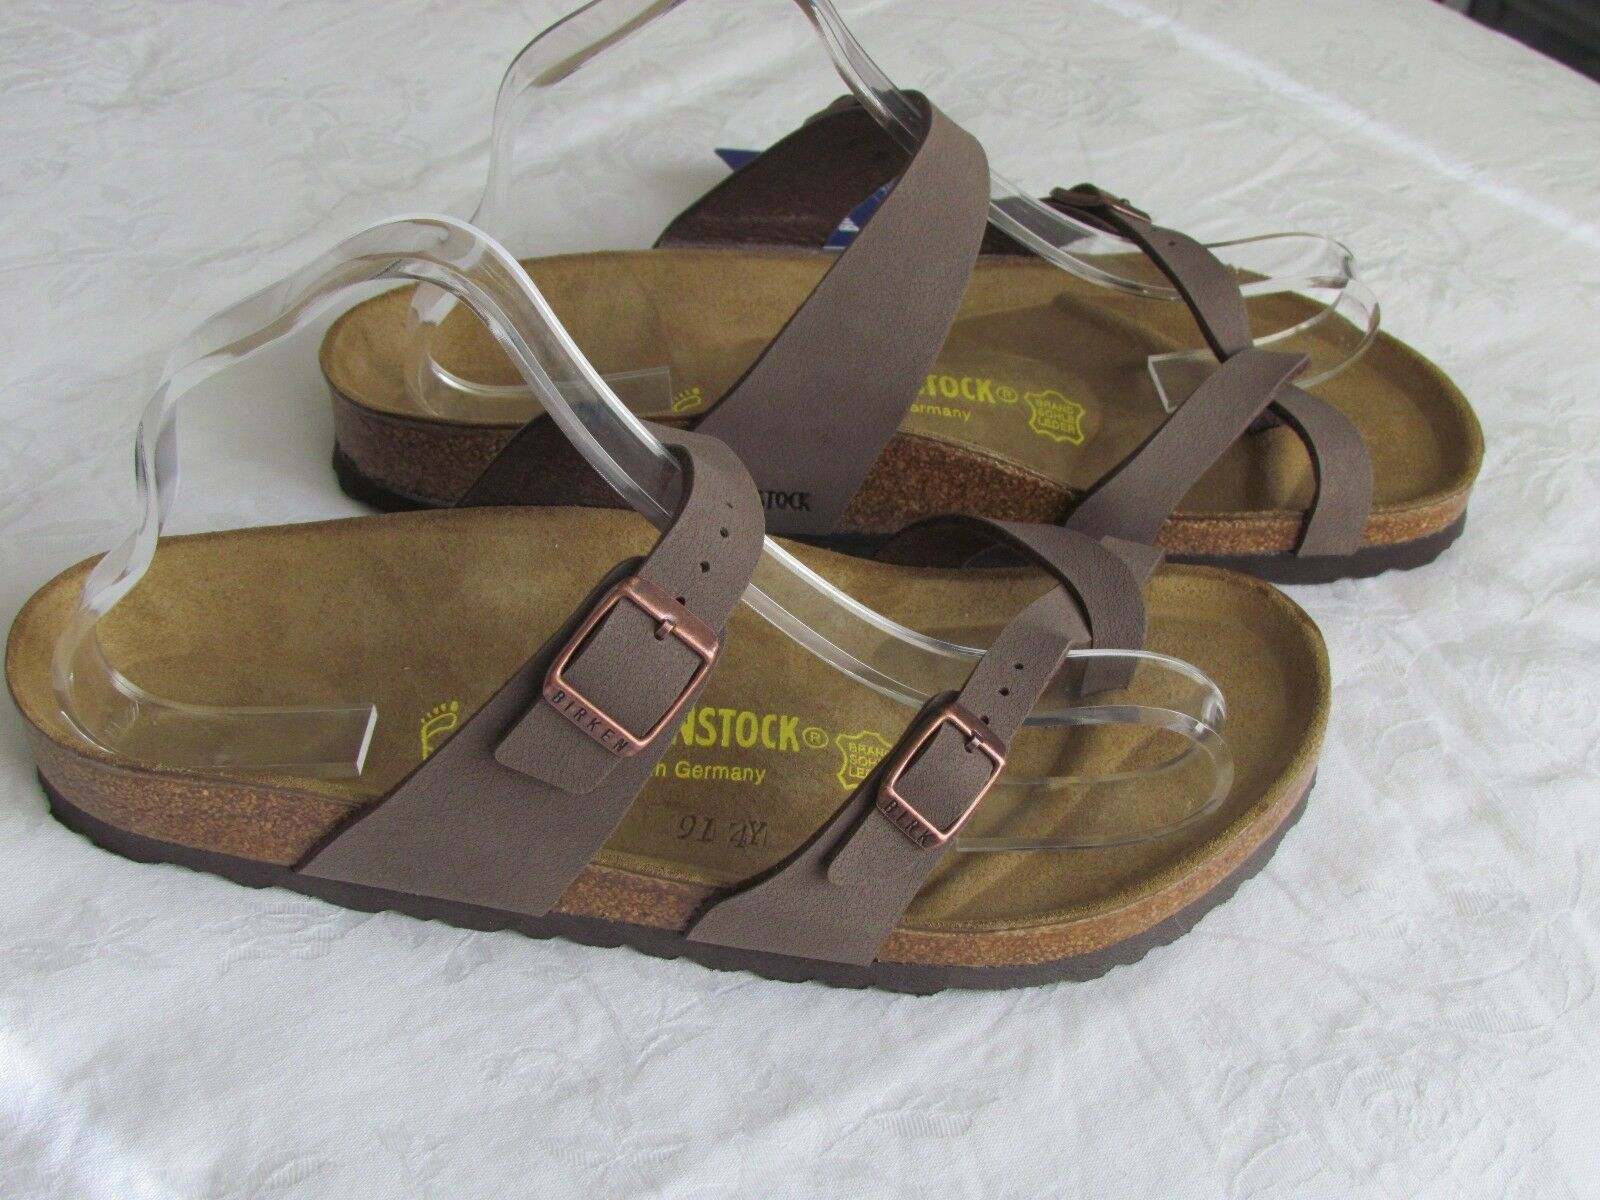 Nuevo Birkenstock Mayari Damas Mocca Marrón Toe Post Sandalias UK Size 7.5